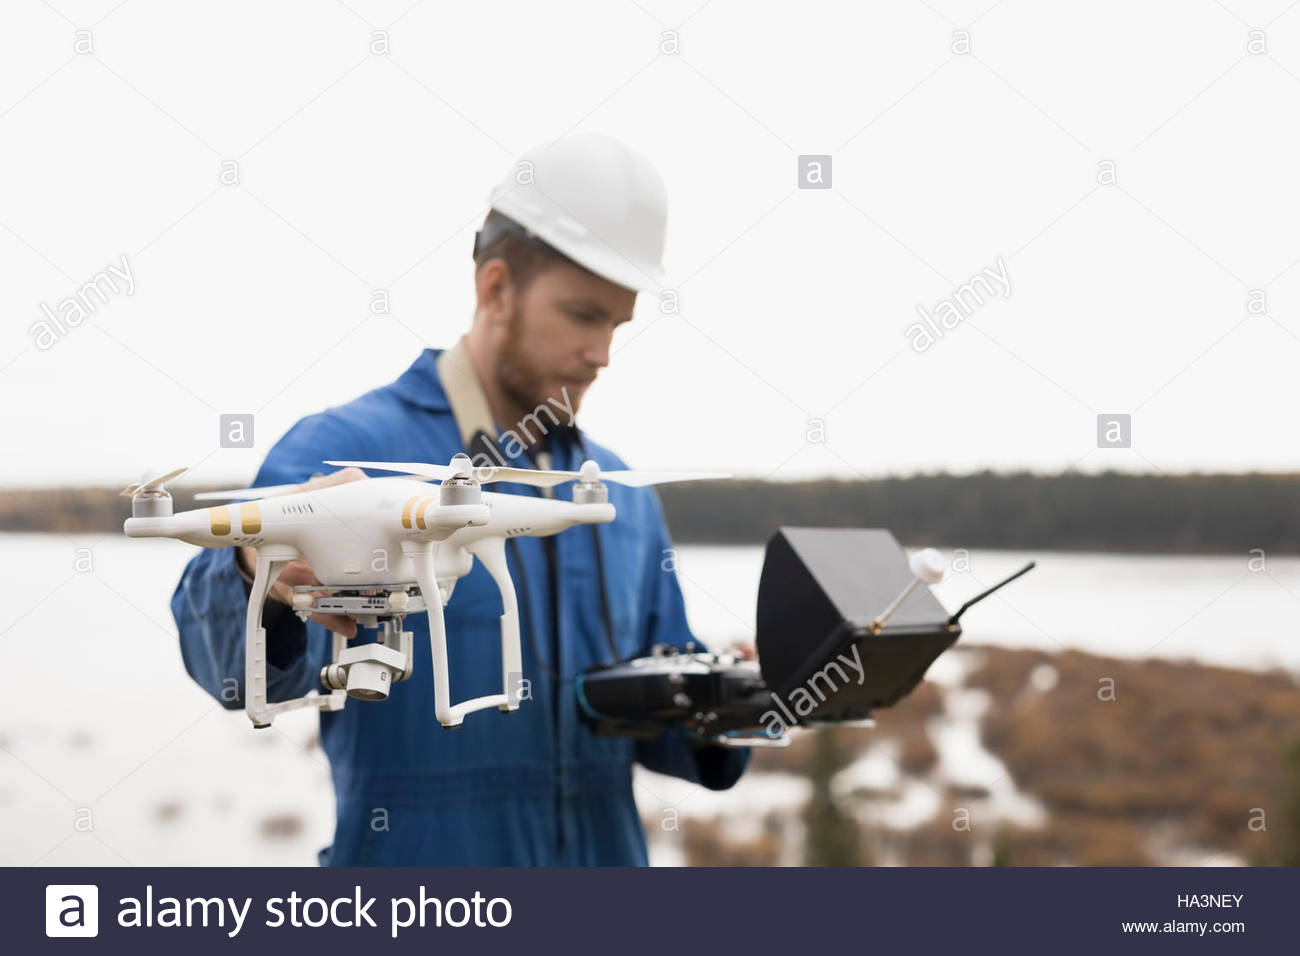 Surveyor with drone equipment at lakeside - Stock Image